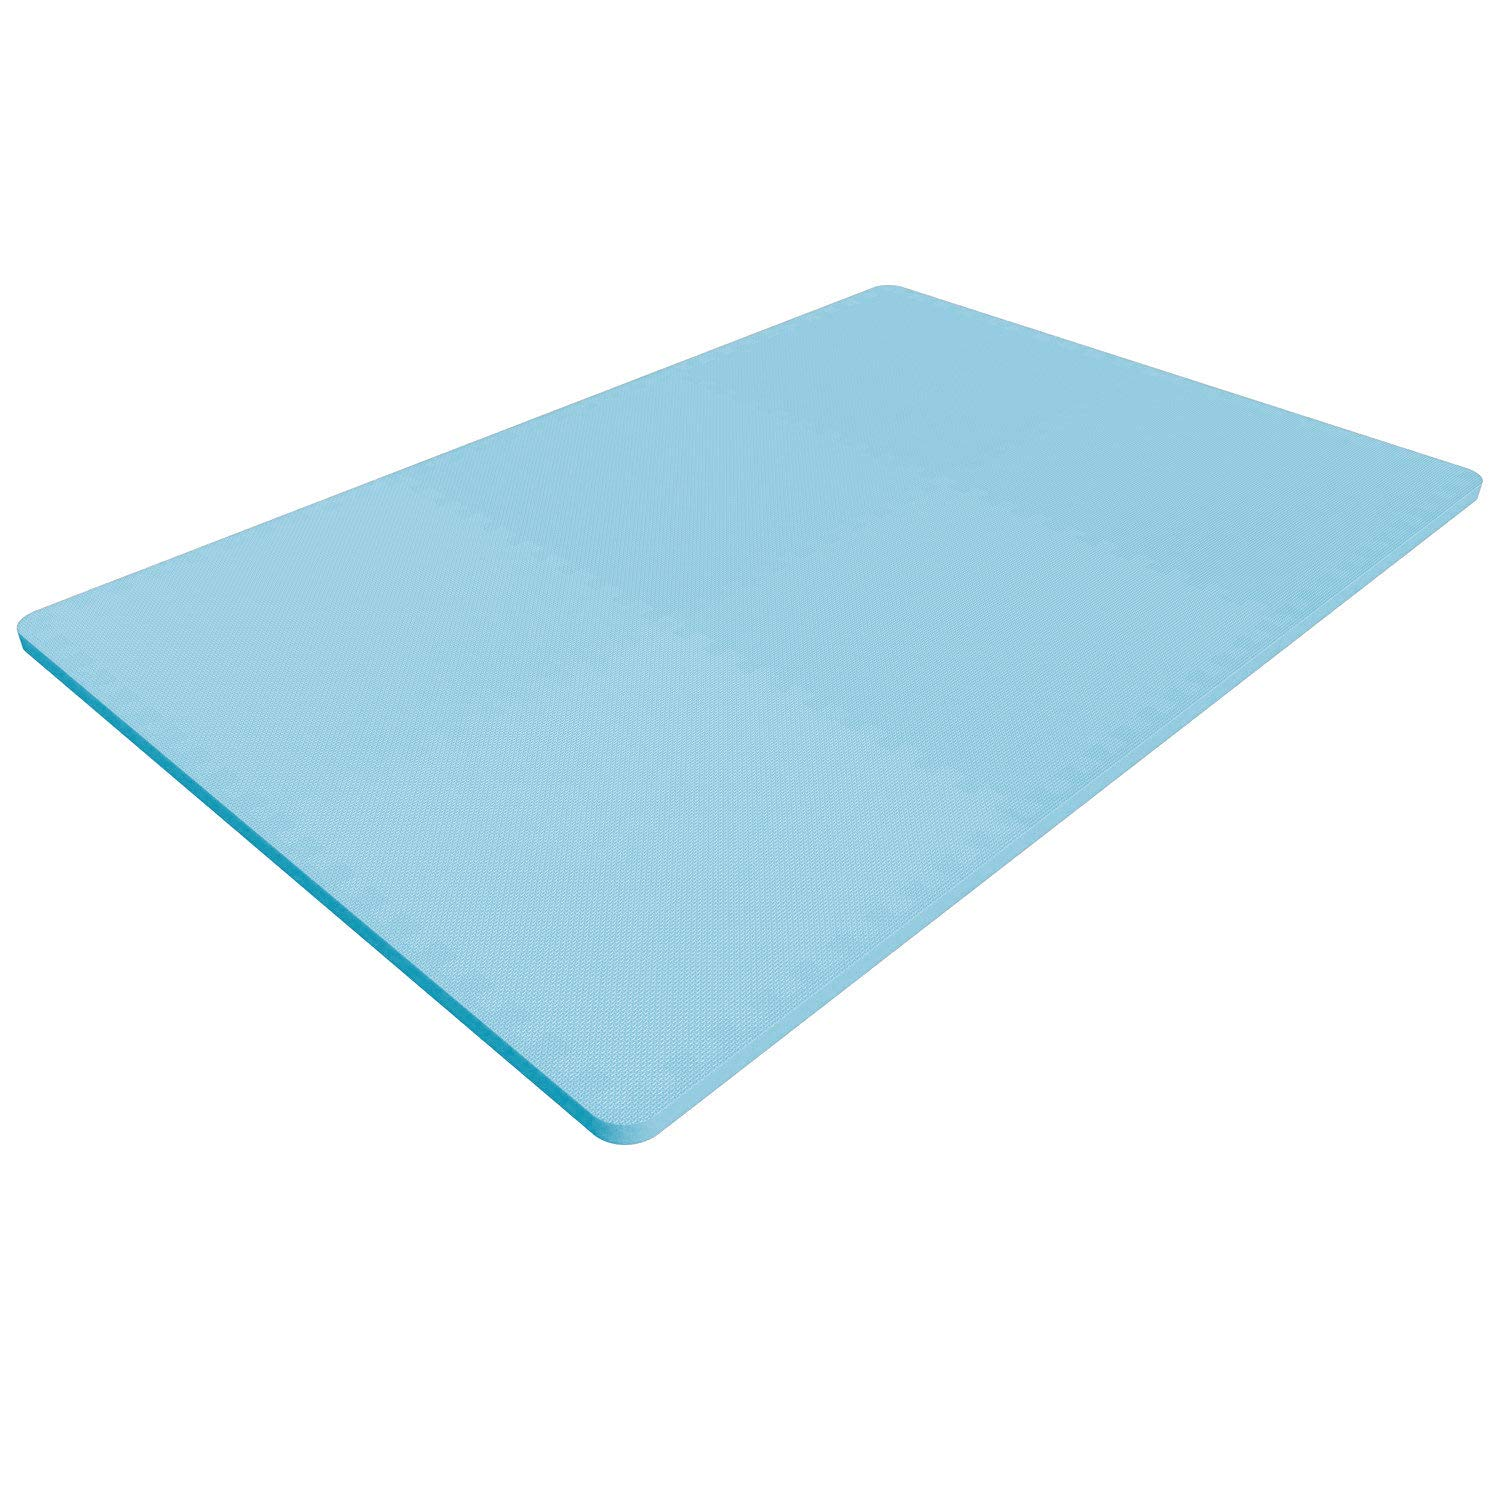 LEVOIT Puzzle Exercise Mat, Premium EVA Foam Interlocking Tiles, Protective Flooring for Gym Equipment and Cushions for Workouts, 24 SQ FT (6 Tiles, 12 Borders) (Blue) by LEVOIT (Image #3)